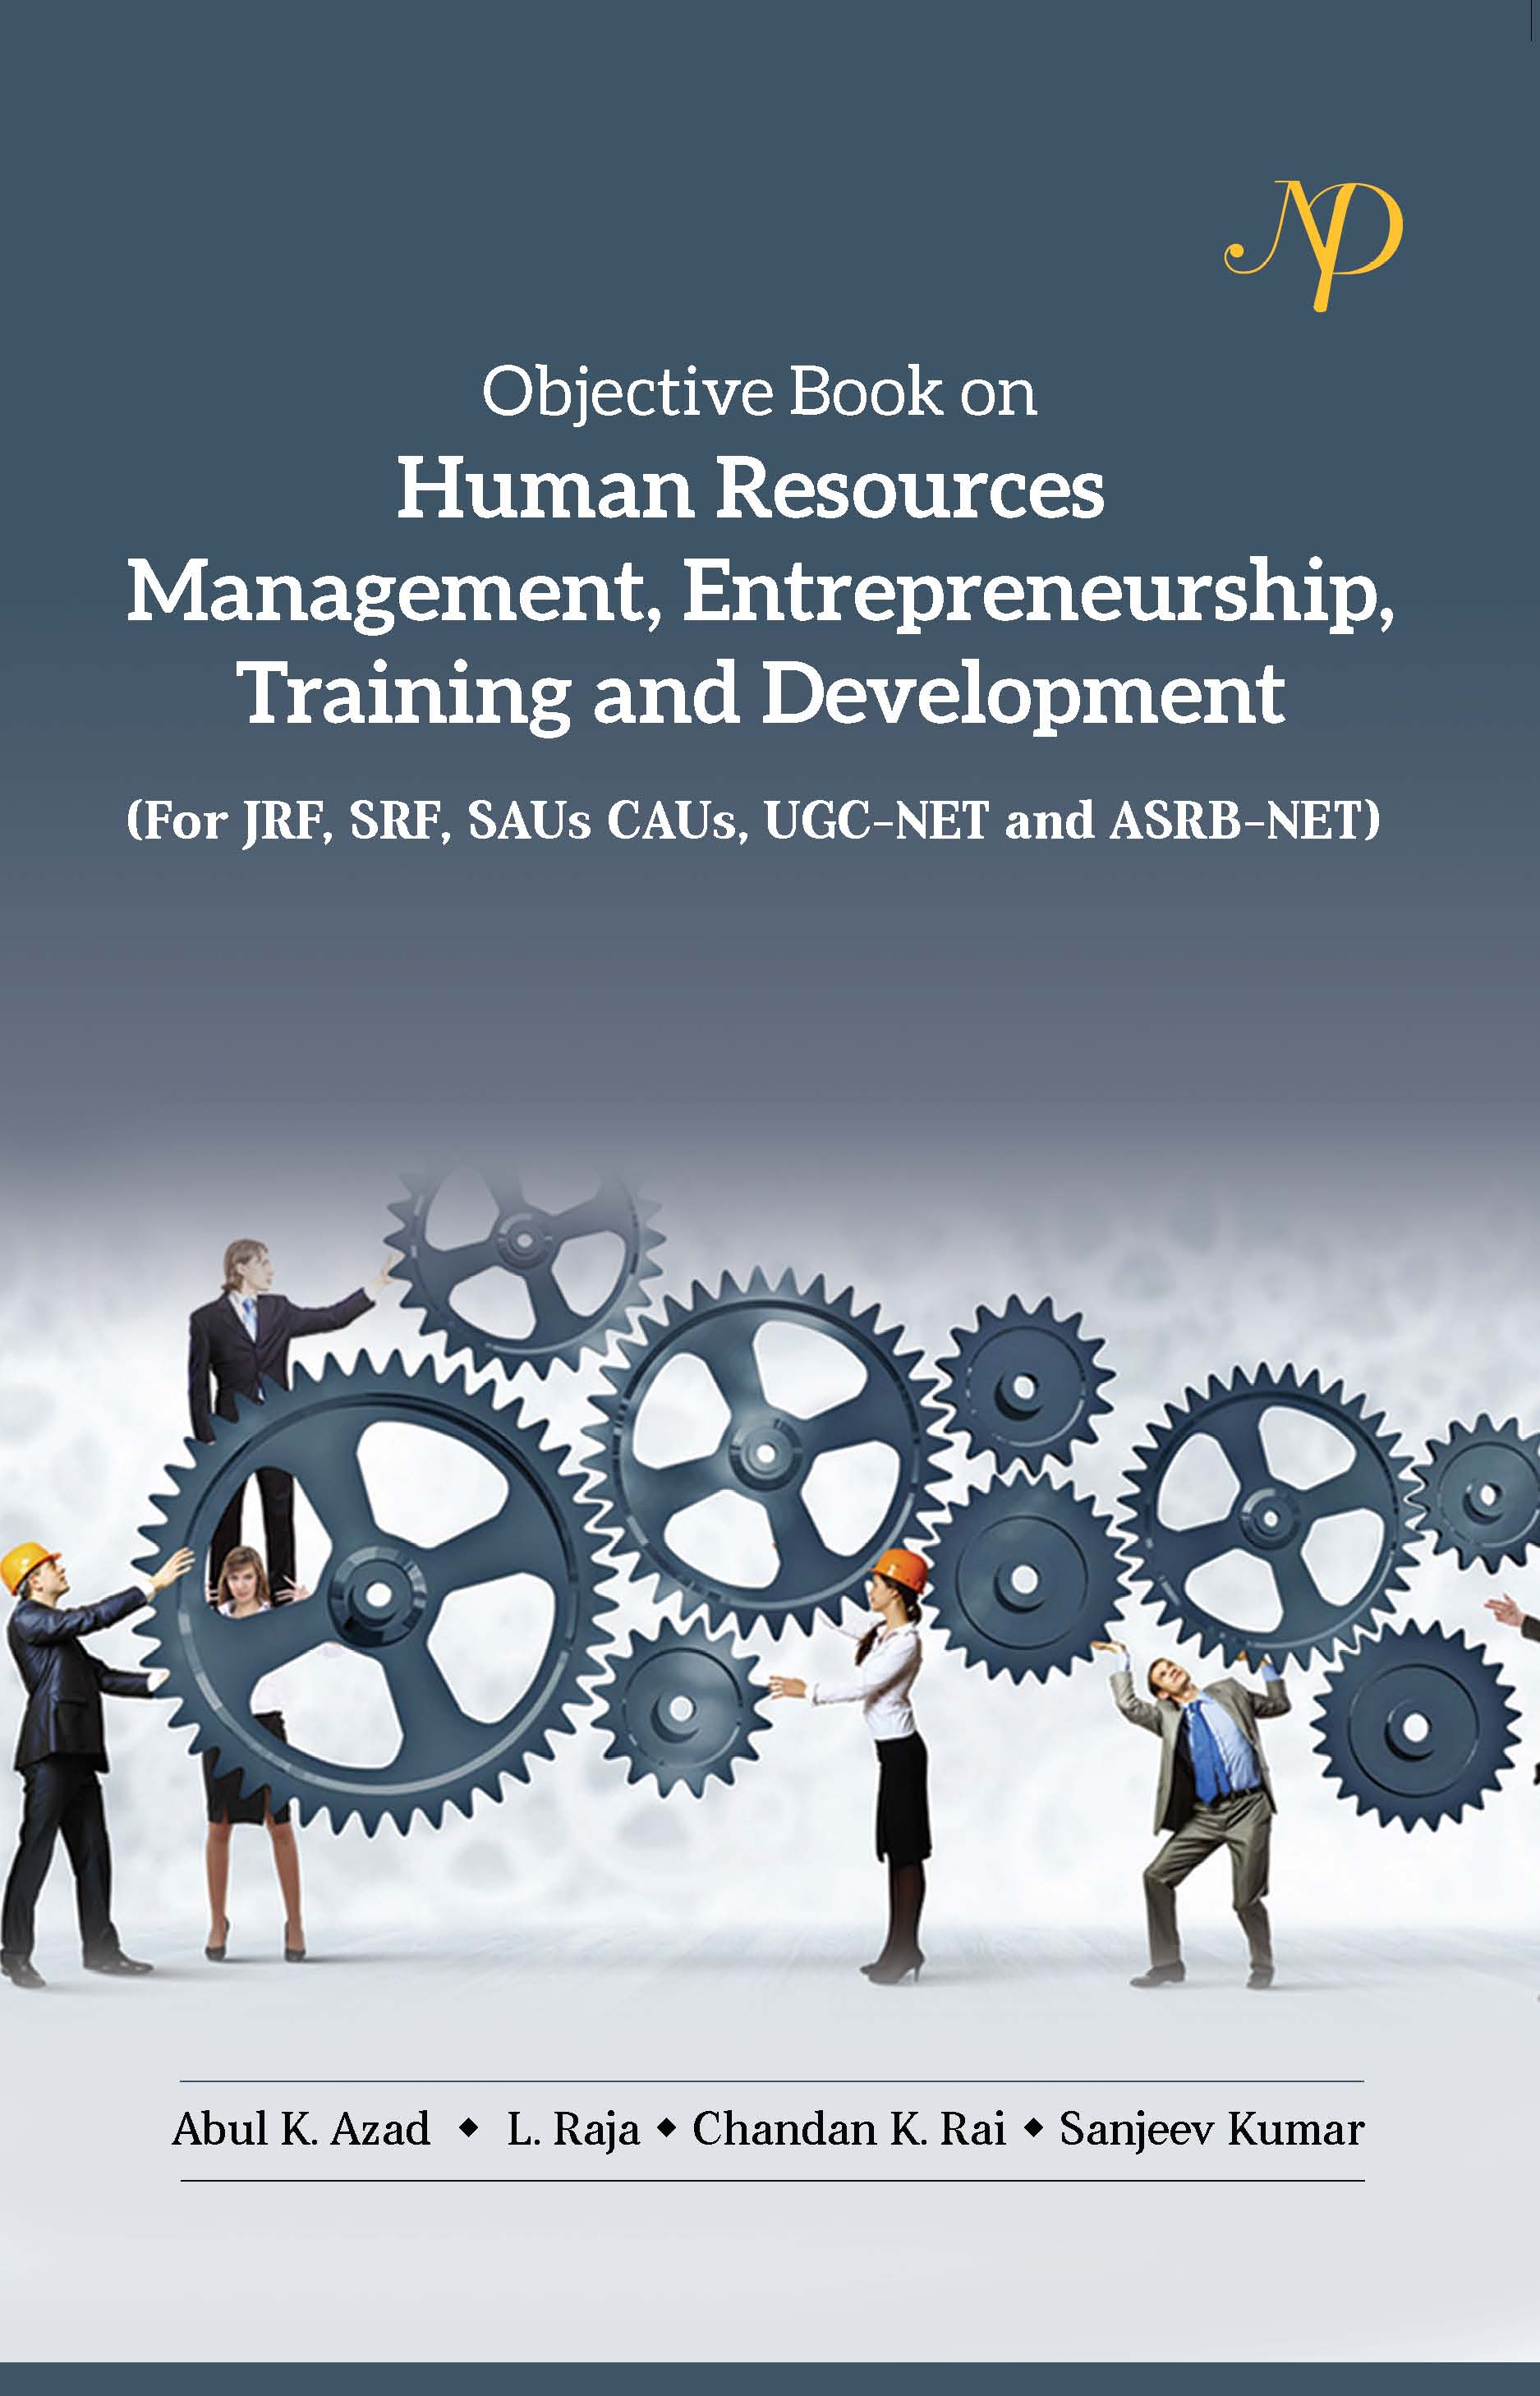 Human resources management - 2.jpg